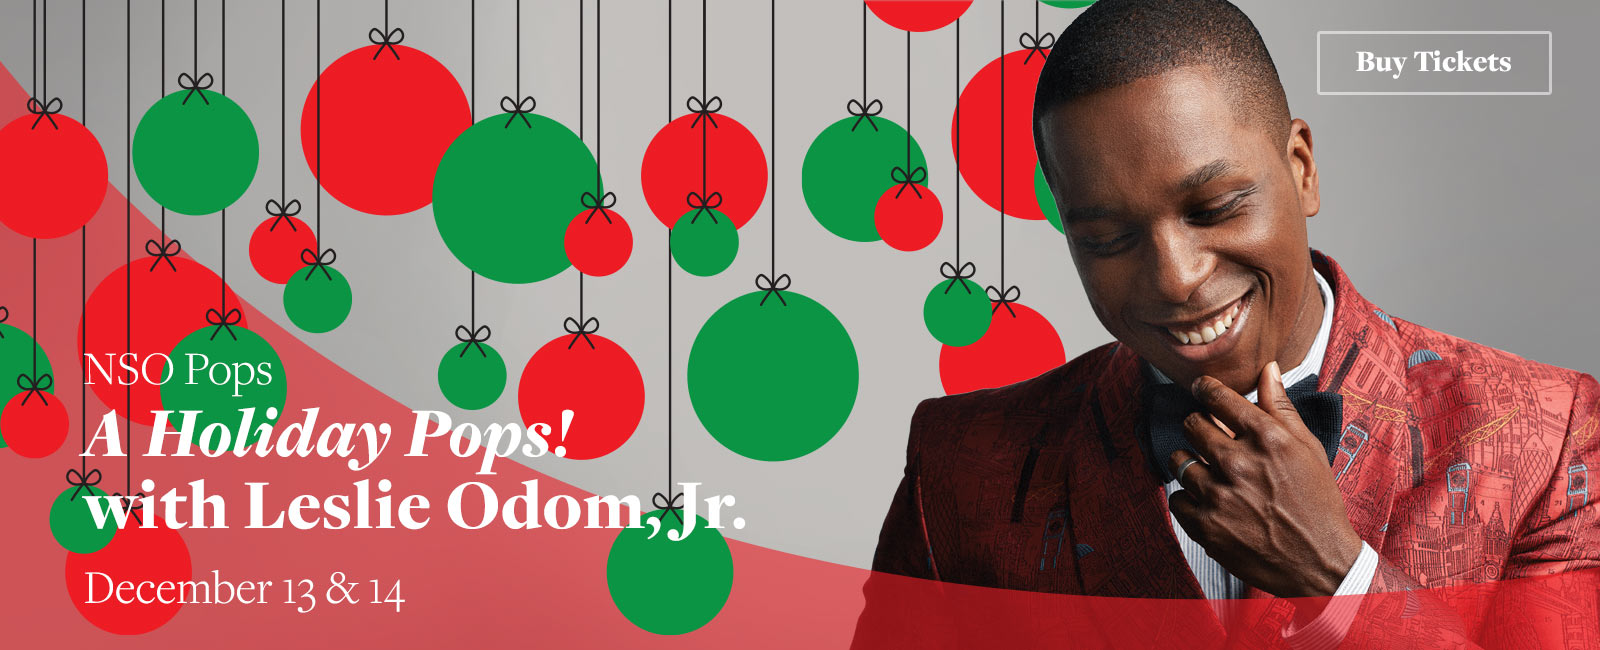 A Holiday Pops! with Leslie Odom, Jr.